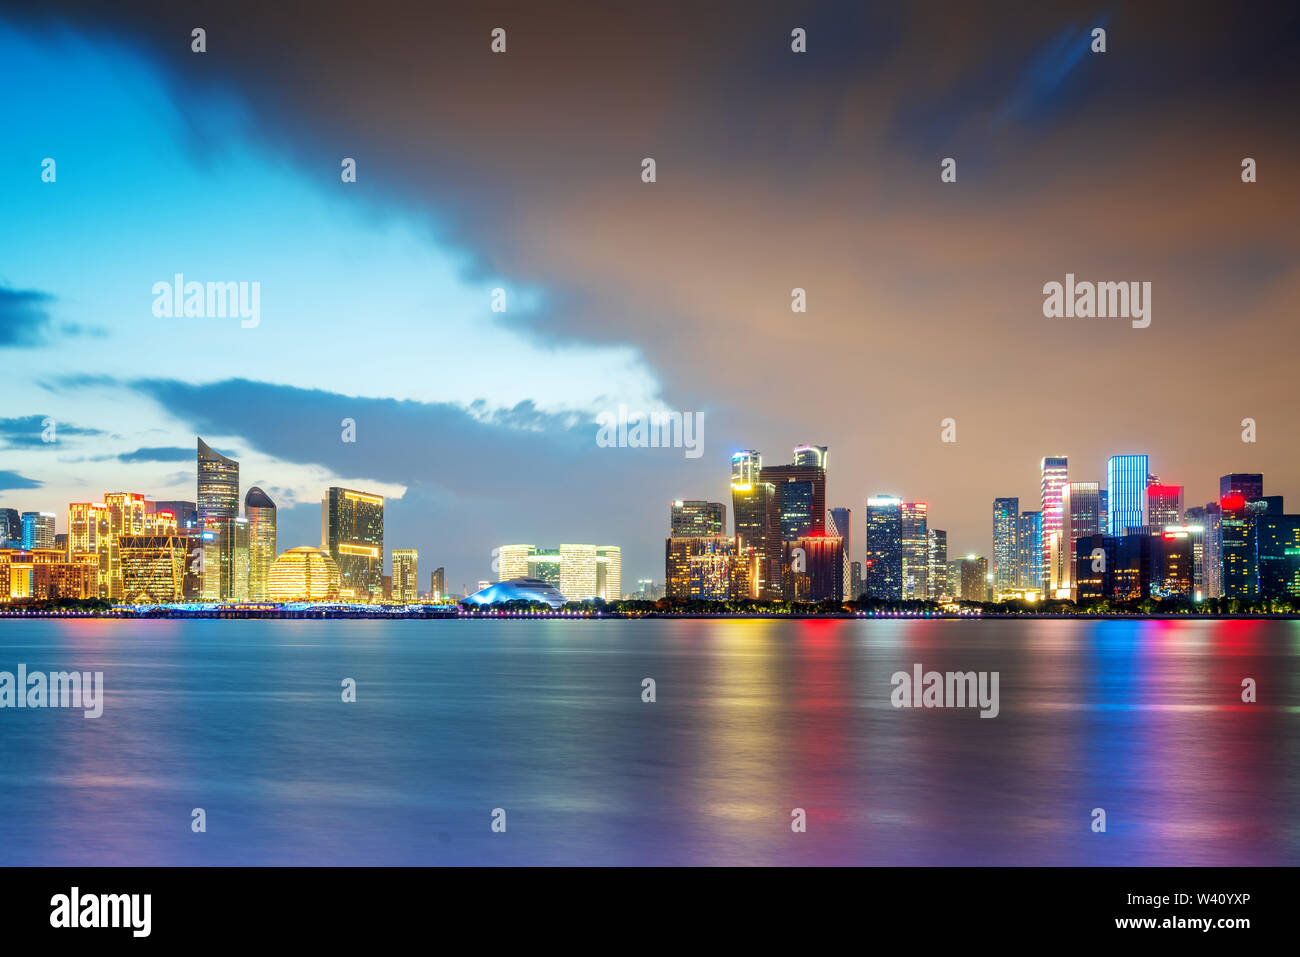 Modern City Skyline in Qiantang River New Town, Hangzhou, China - Stock Image